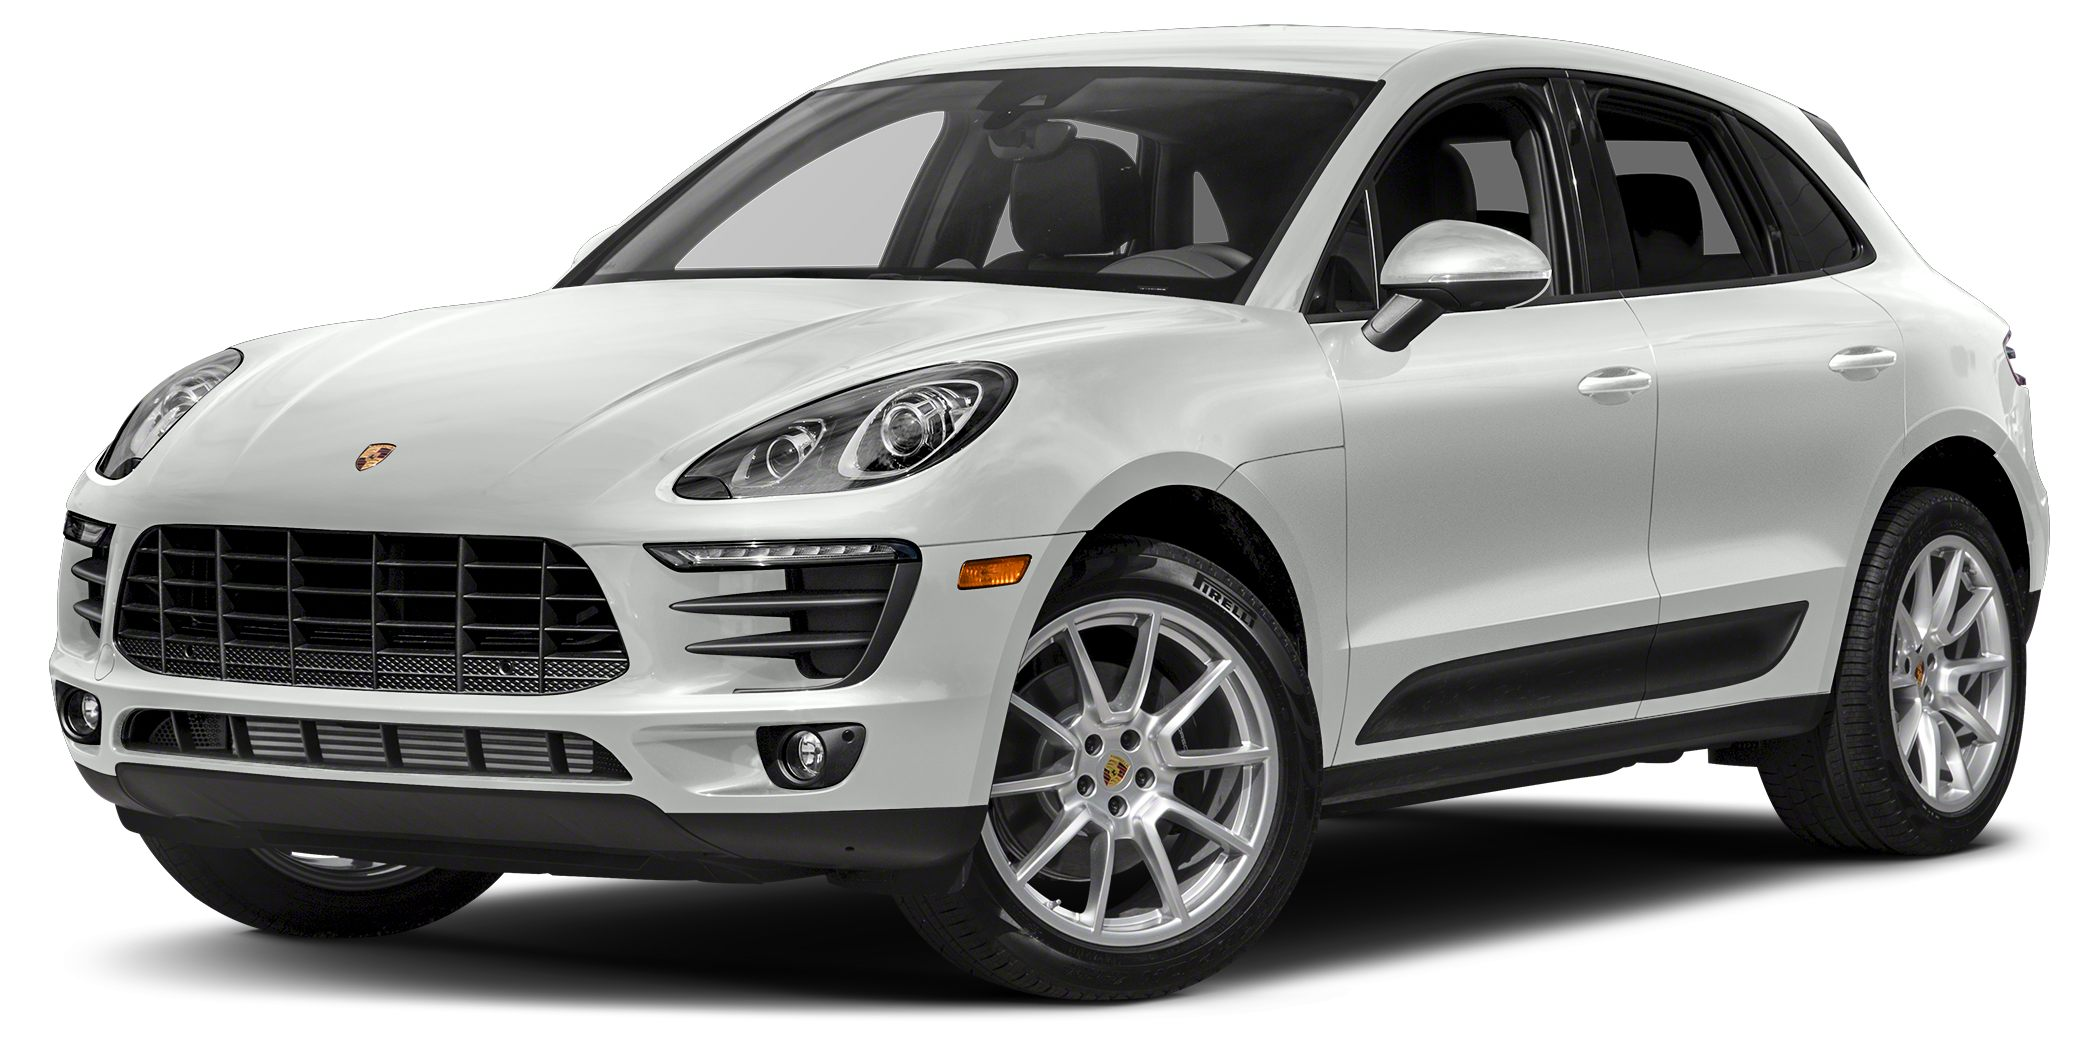 2018 Porsche Macan Base New Arrival This enjoyable Macan with its grippy AWD will handle anythi